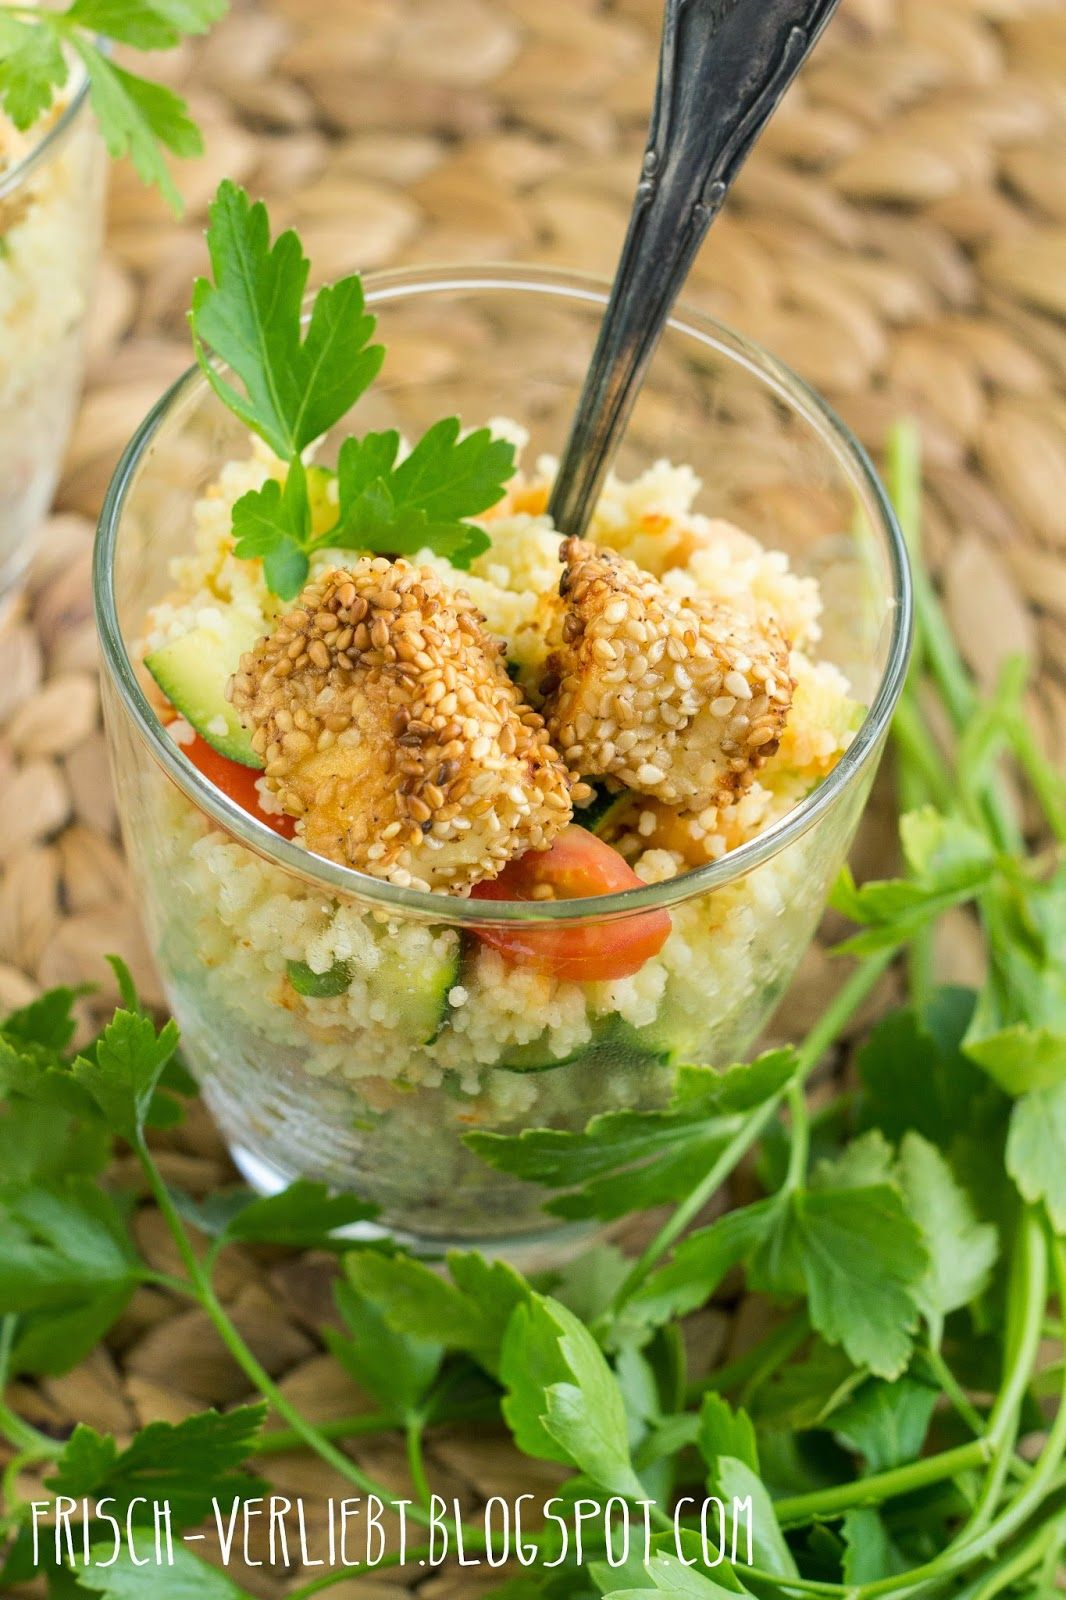 couscous salat mit paniertem feta w rzigem joghurt dressing by frisch verliebt salate. Black Bedroom Furniture Sets. Home Design Ideas